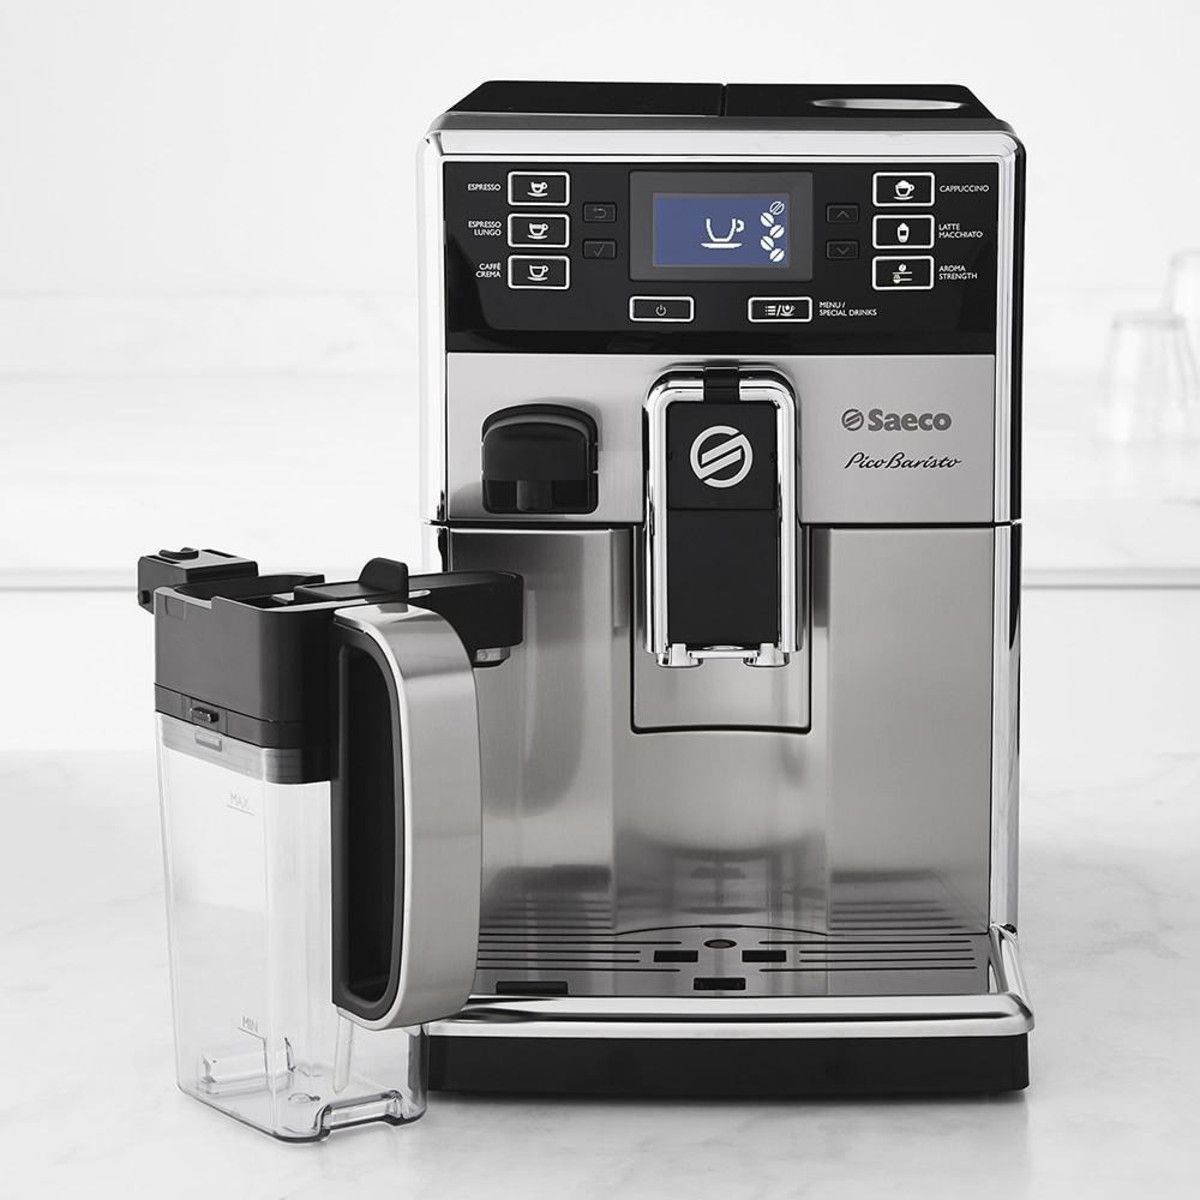 Saeco PicoBaristo Espresso Maker with Milk Carafe